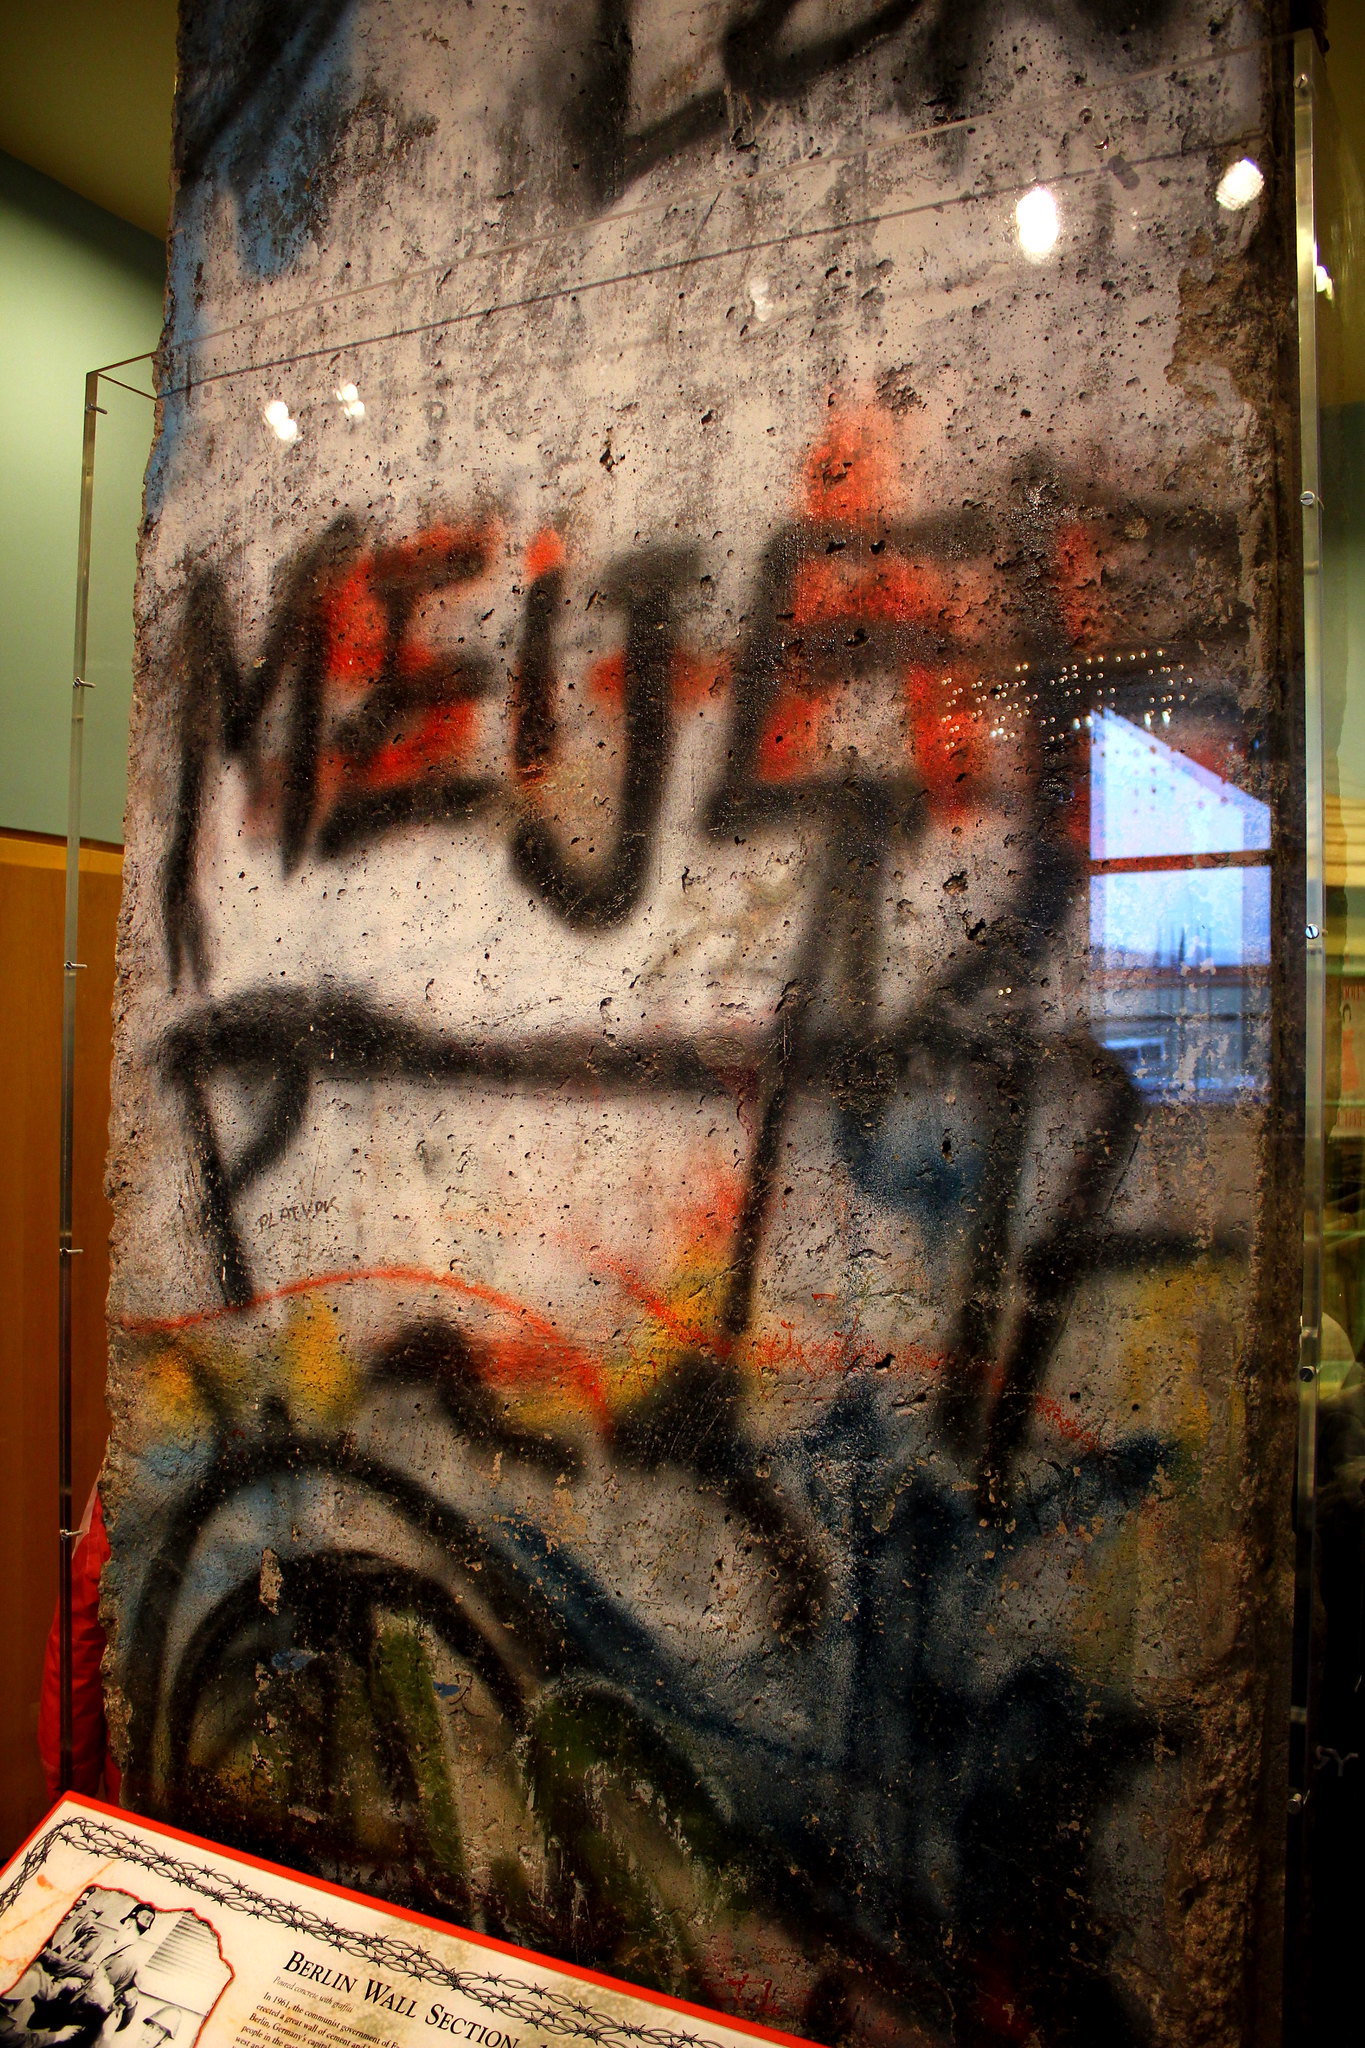 A segment of the Berlin Wall in a museum display with the word Meijer on it.